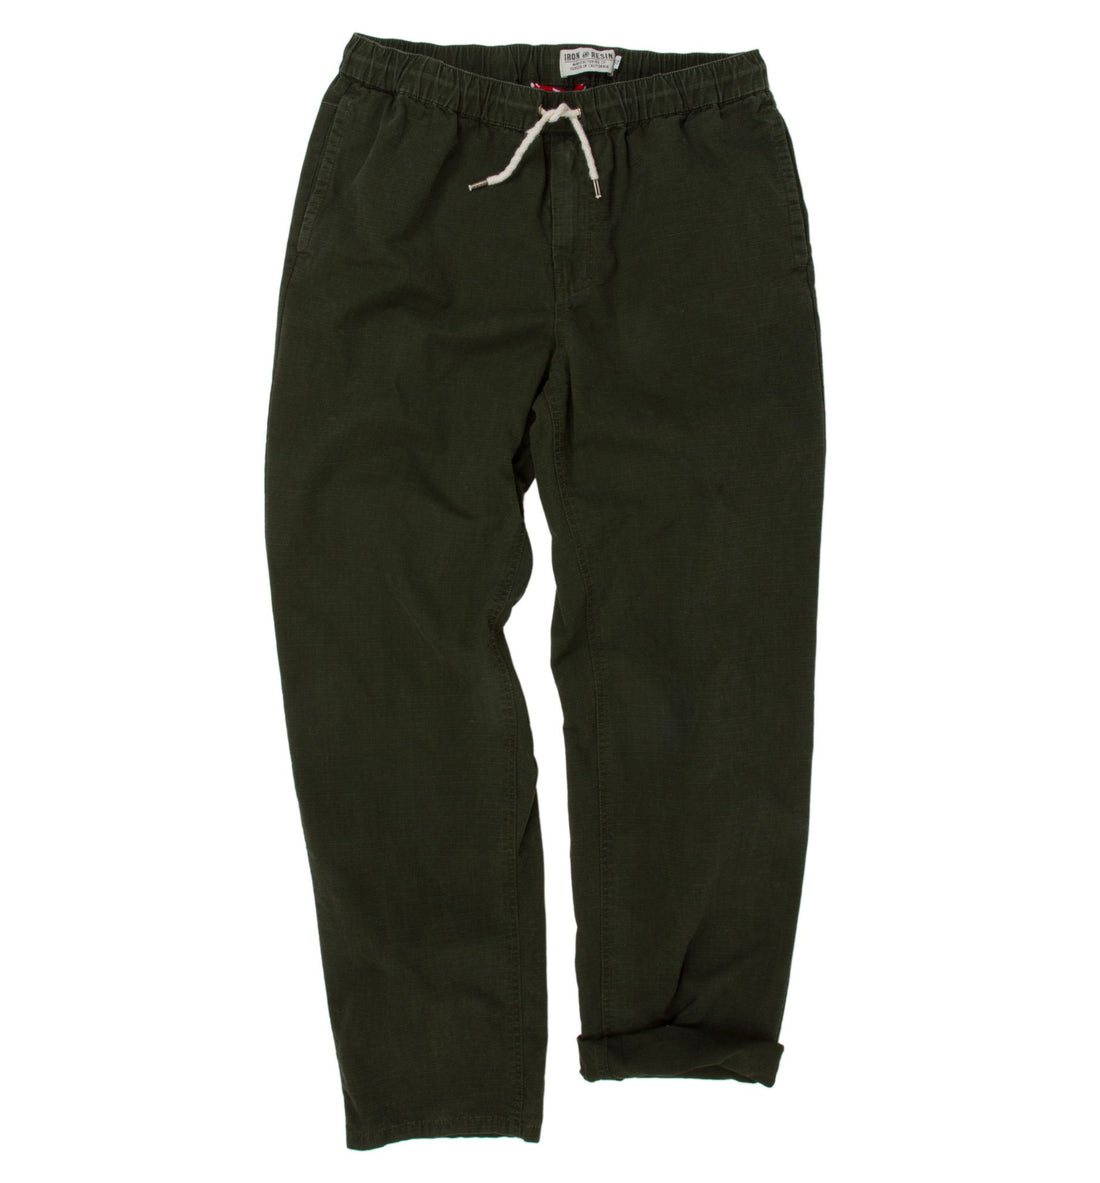 Strand Pant - Bottoms - Iron and Resin